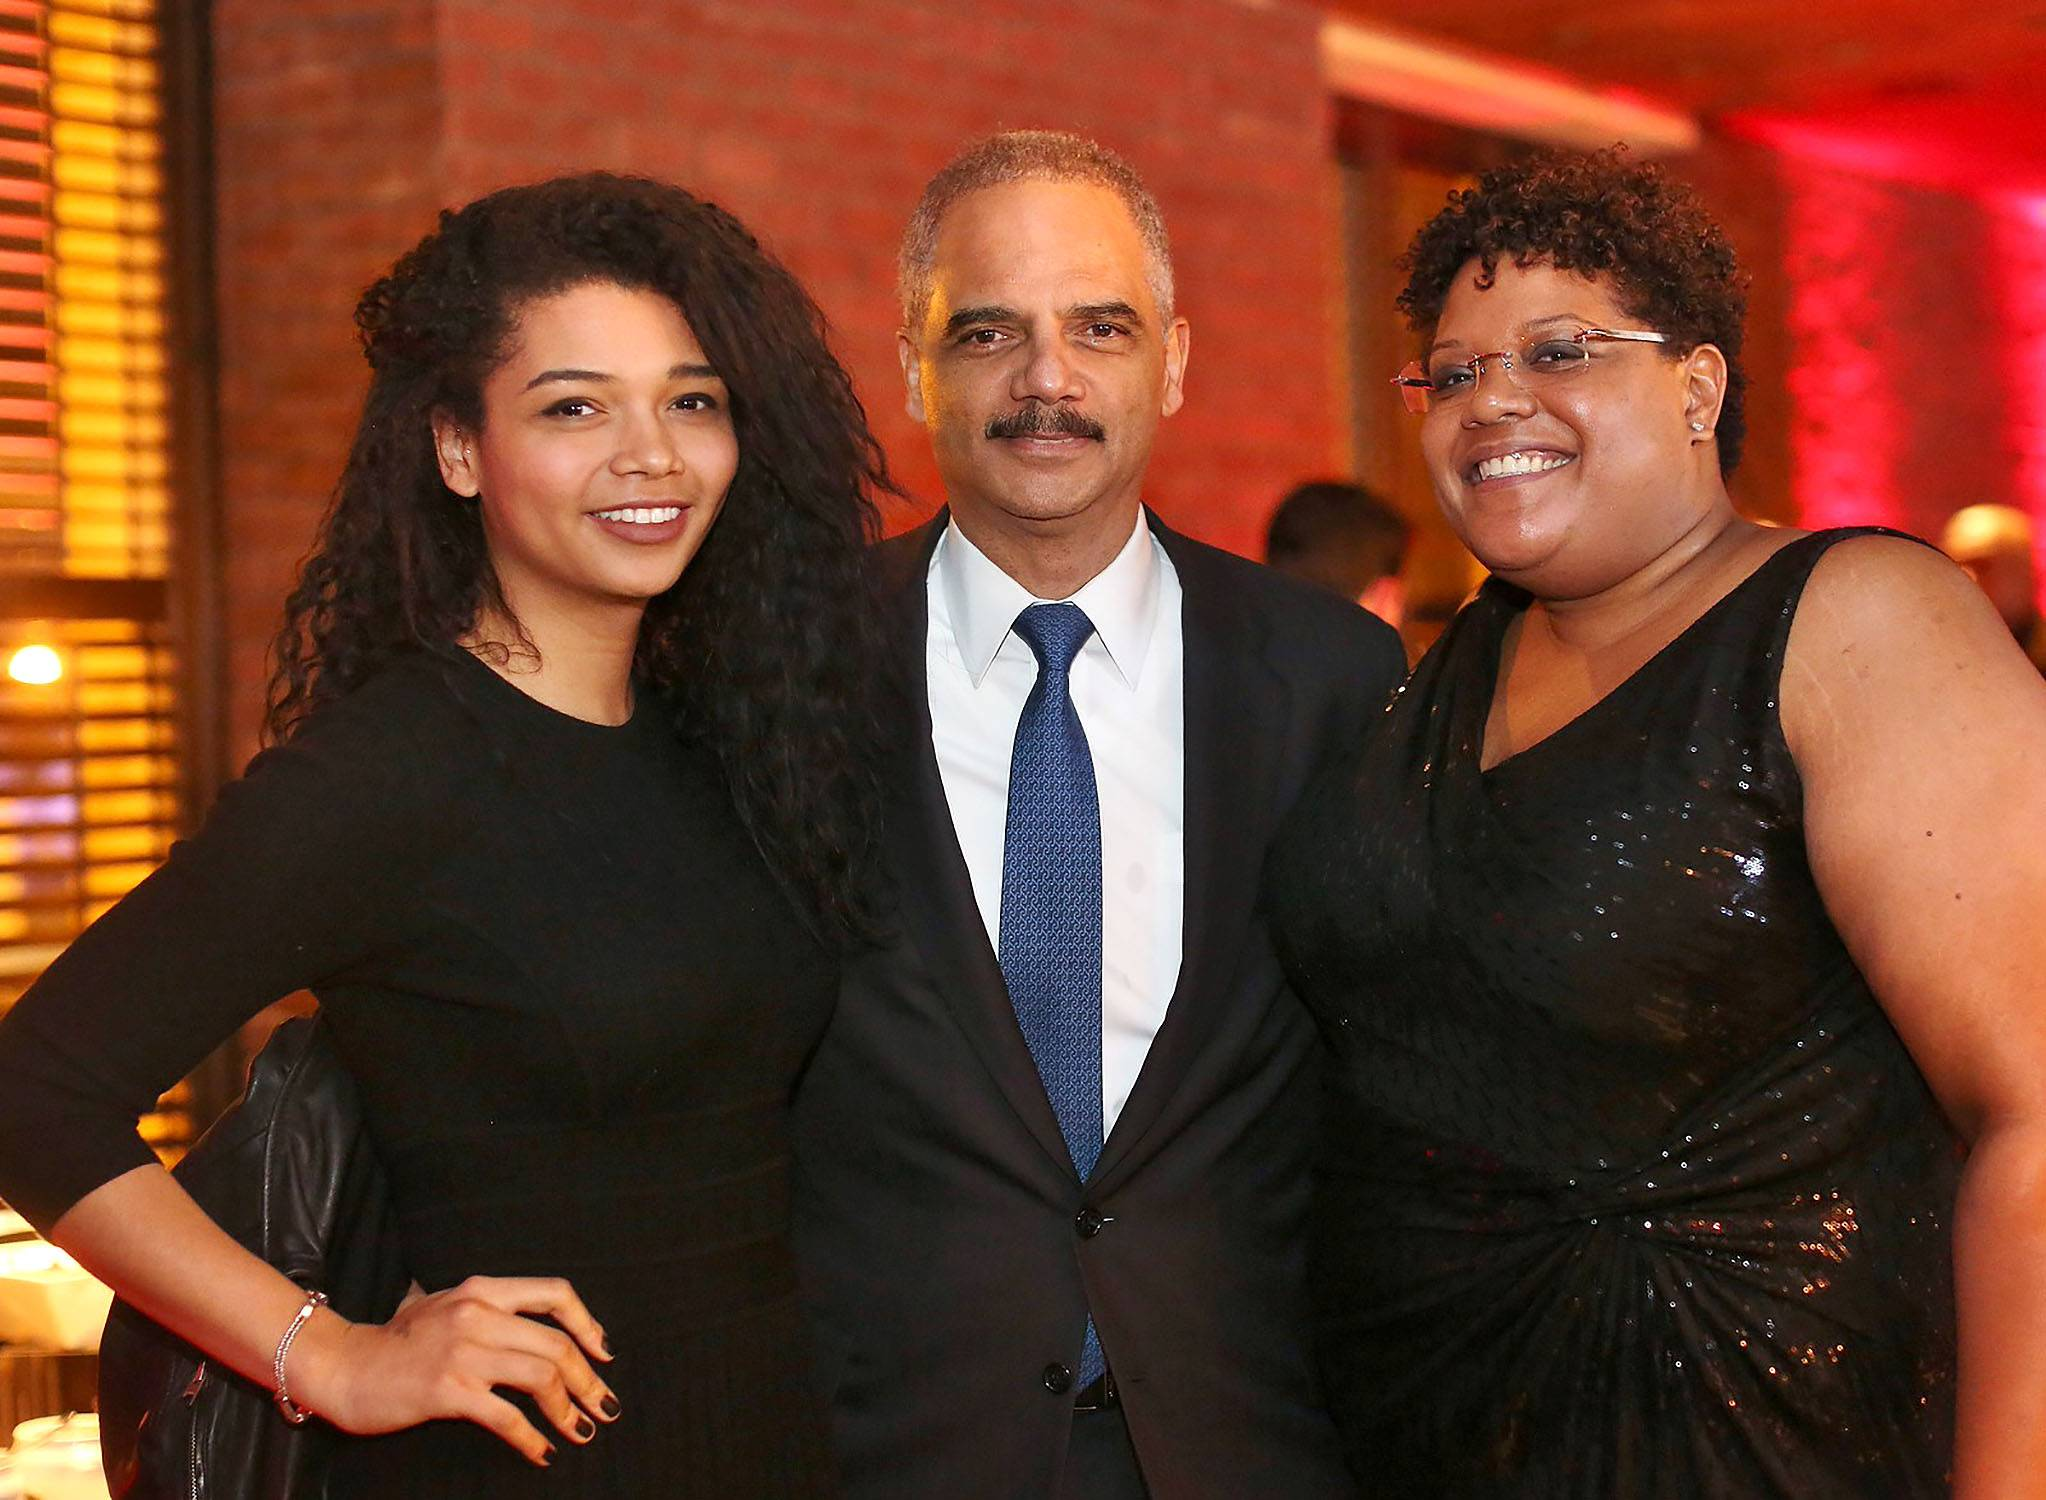 Holding a Piece of History - Attorney General Eric Holder and his guests share a warm embrace while taking a picture.  (Photo: Phelan Marc/BET)